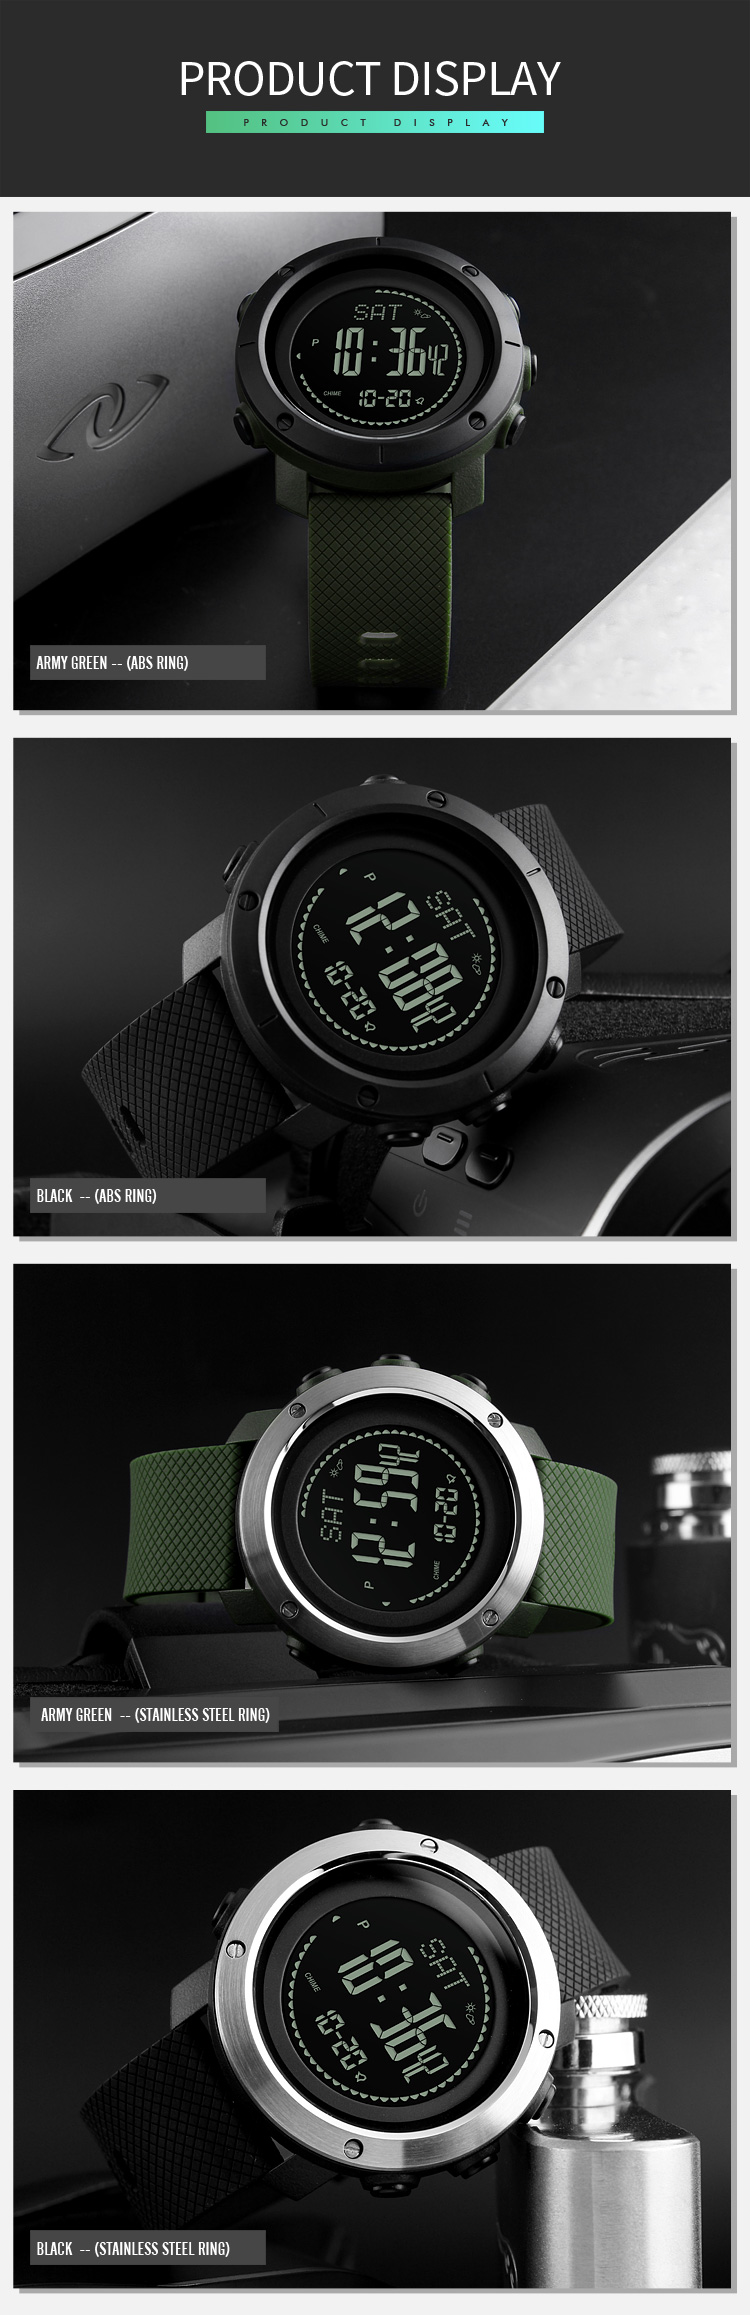 Sports Watches Men Pedometer Calories Digital Watch Women Altimeter Barometer Compass Thermometer Weather Reloj Hombre And To Have A Long Life. Men's Watches